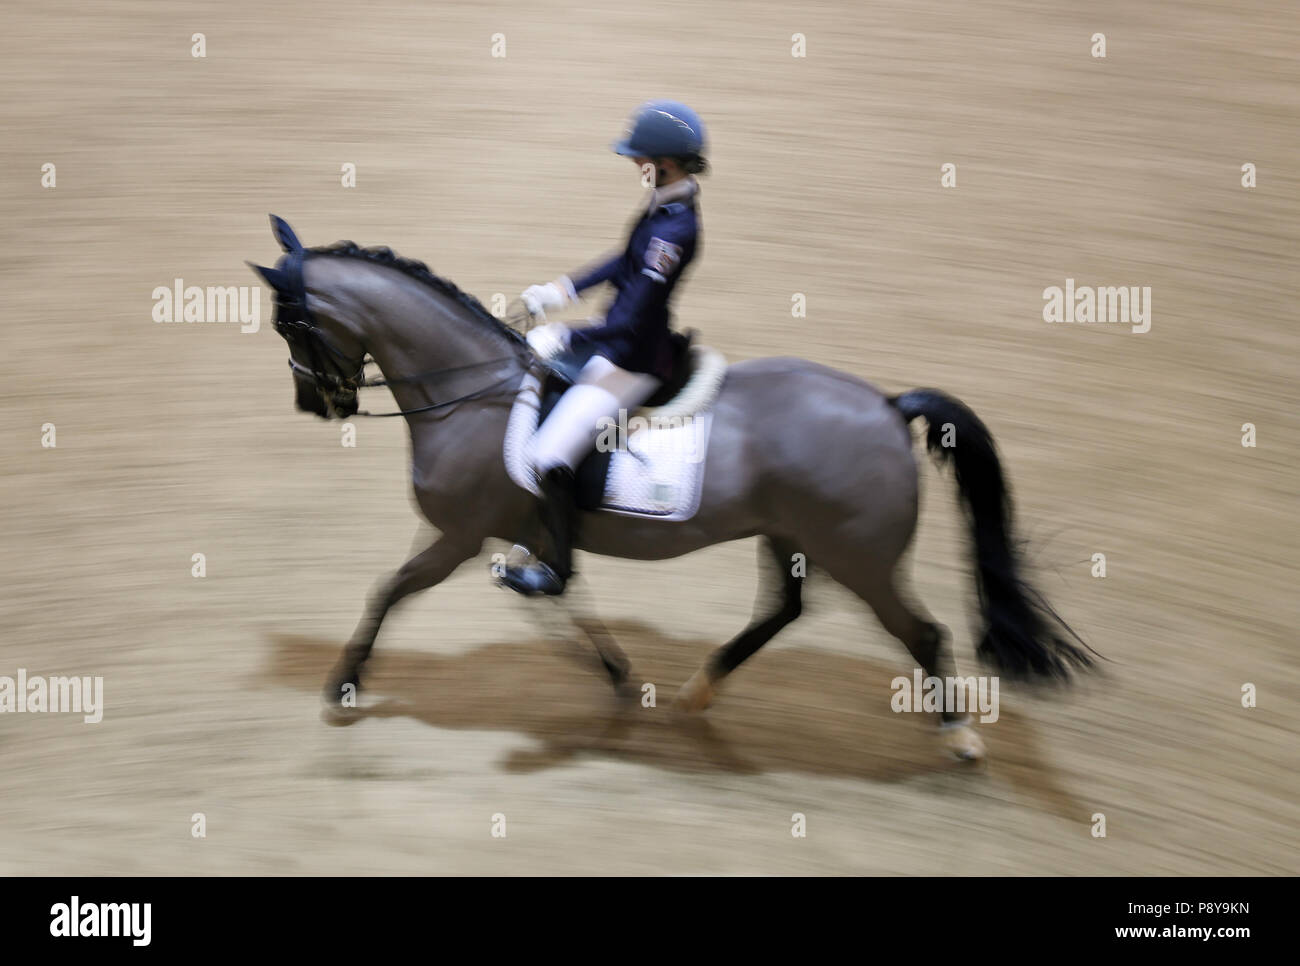 Berlin, dynamics, dressage rider and horse trotting - Stock Image